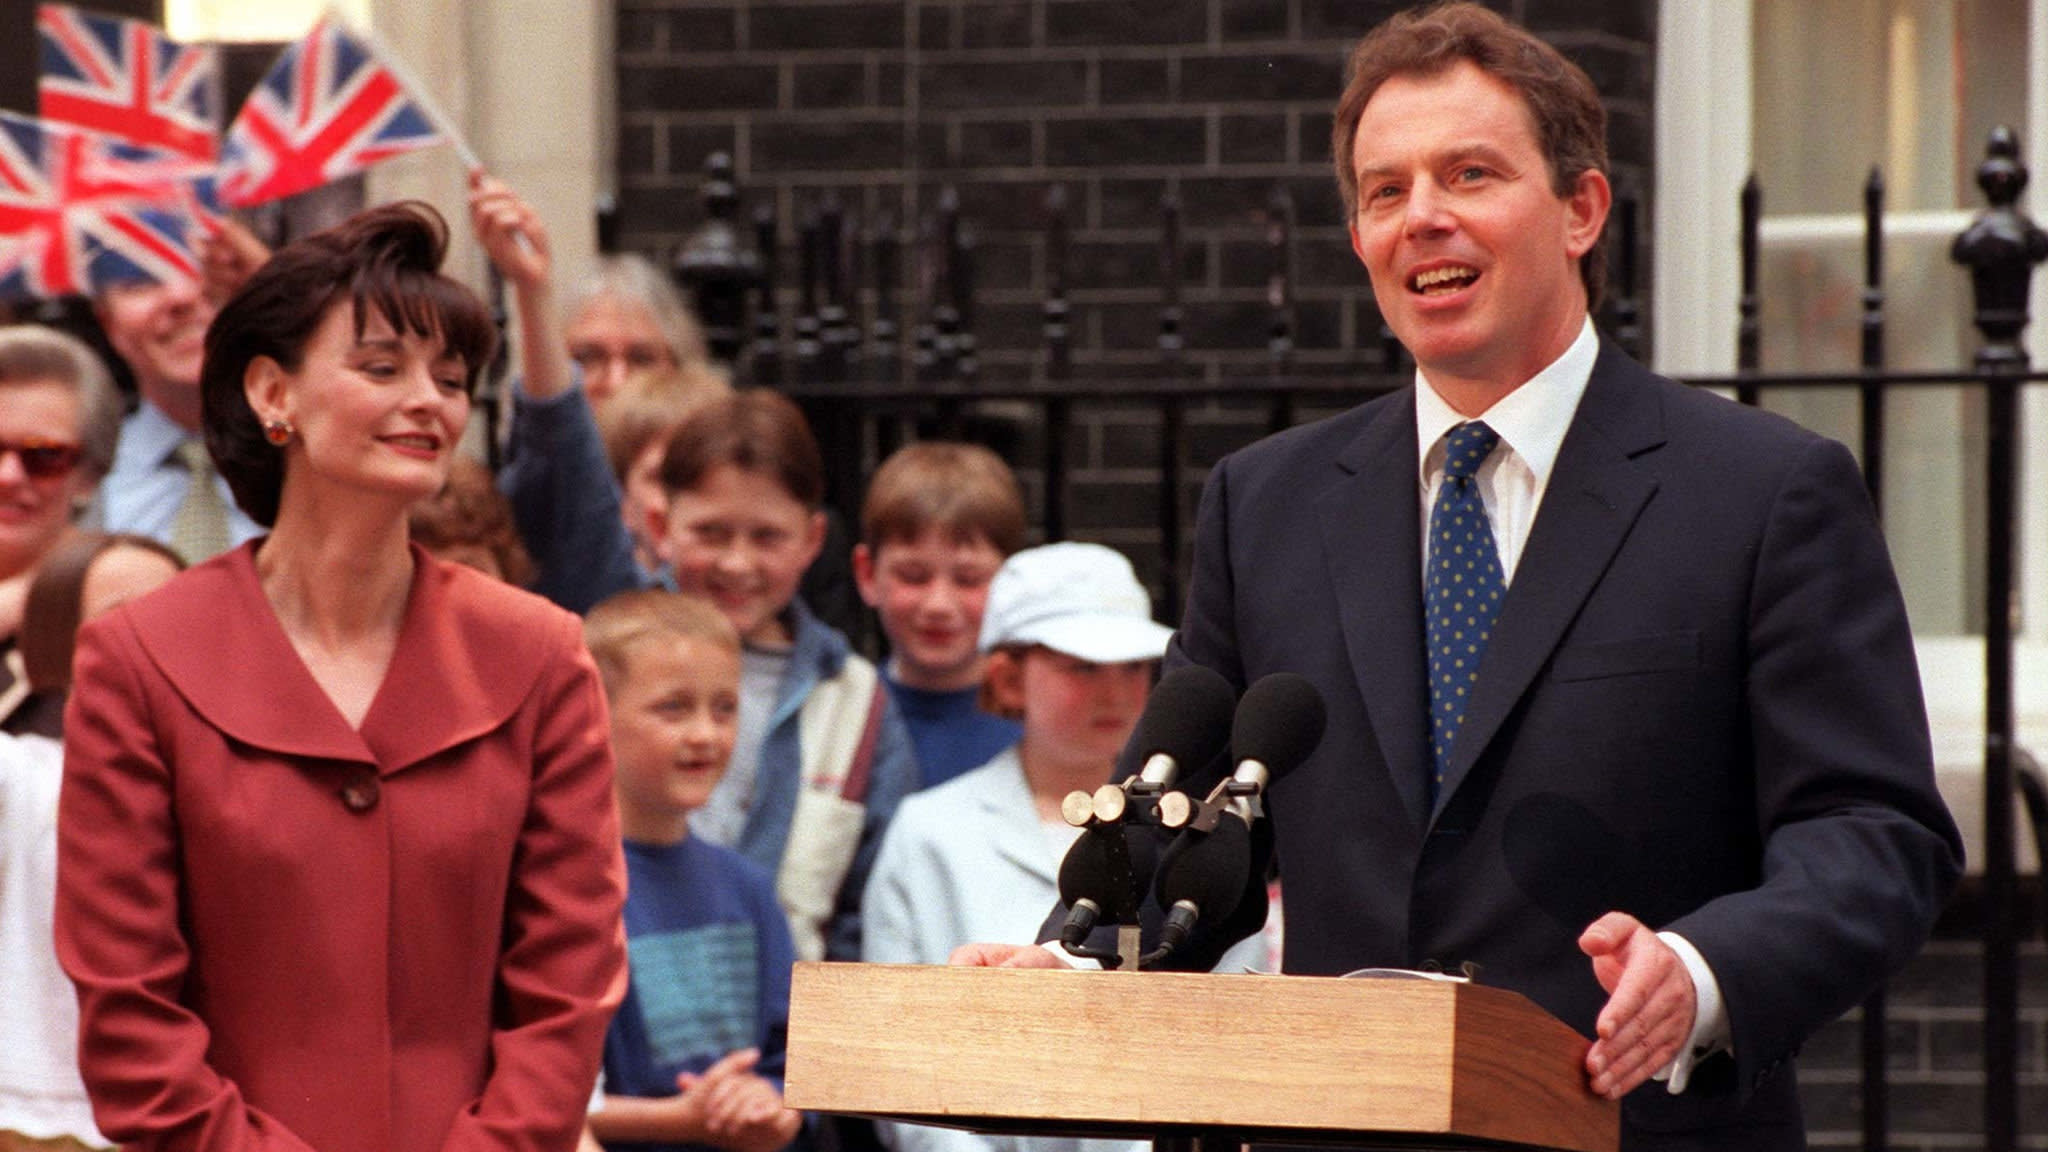 Tony Blair's soggy tie holds lessons for would-be reformers | Financial Times